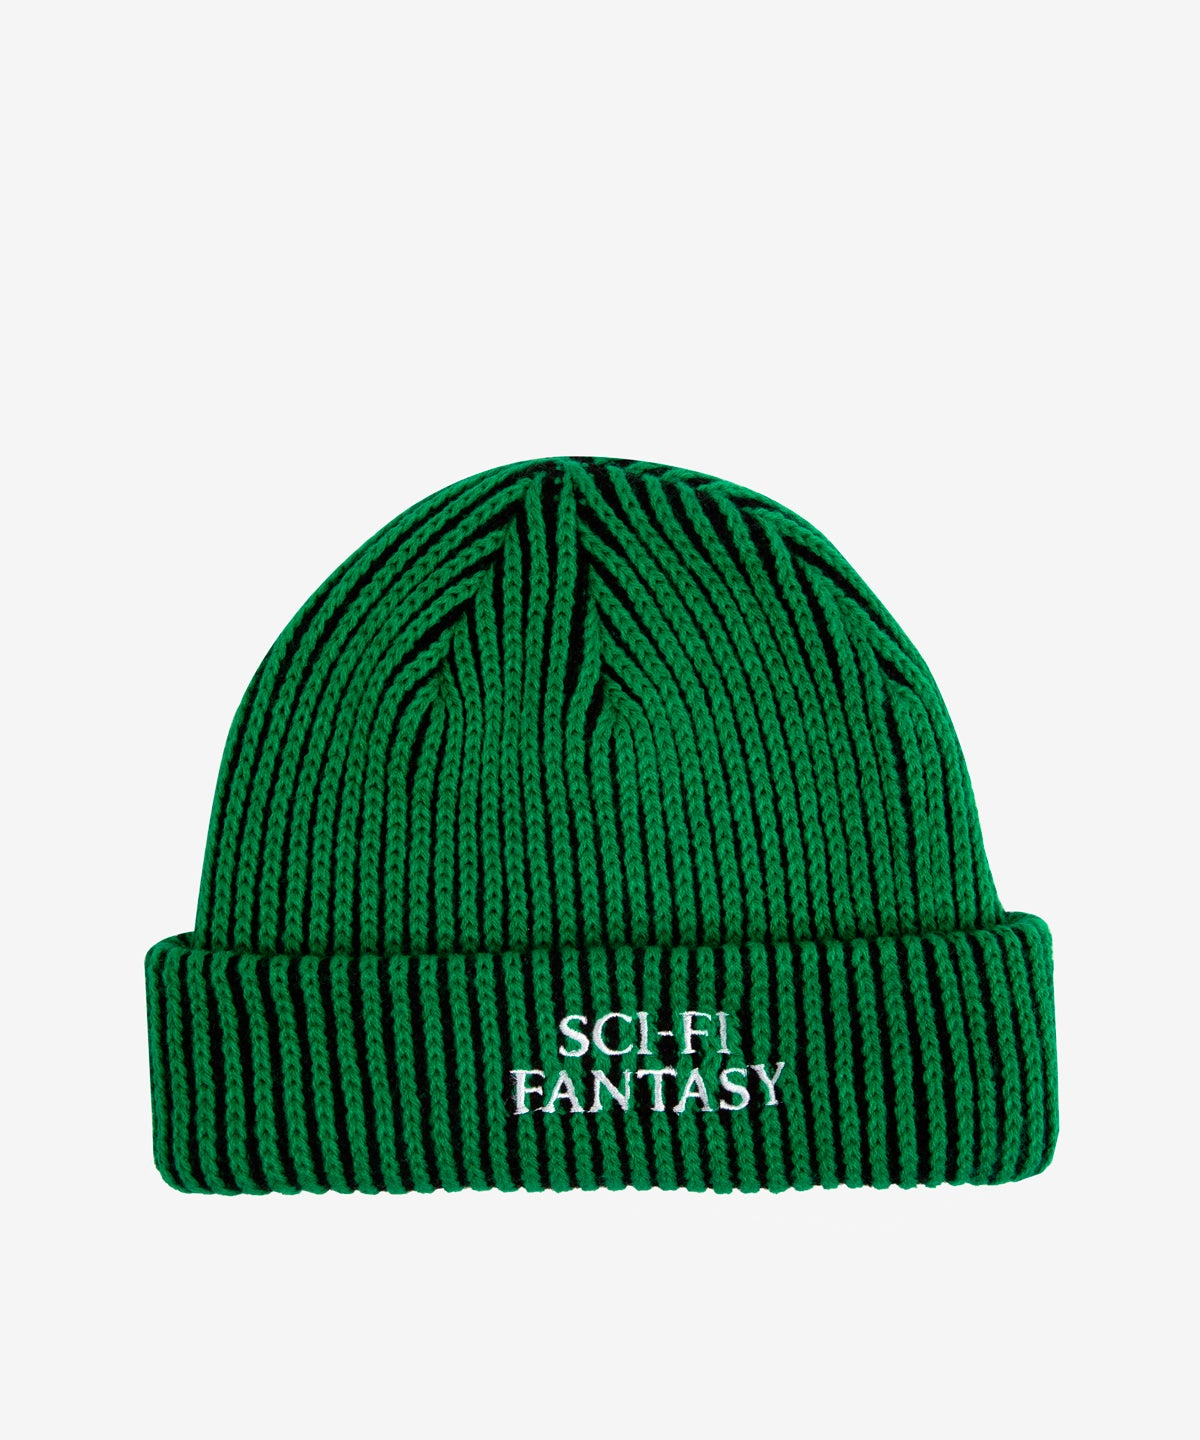 Image of SCI-FI FANTASY_LOGO BEANIE :::BLACK/GREEN:::